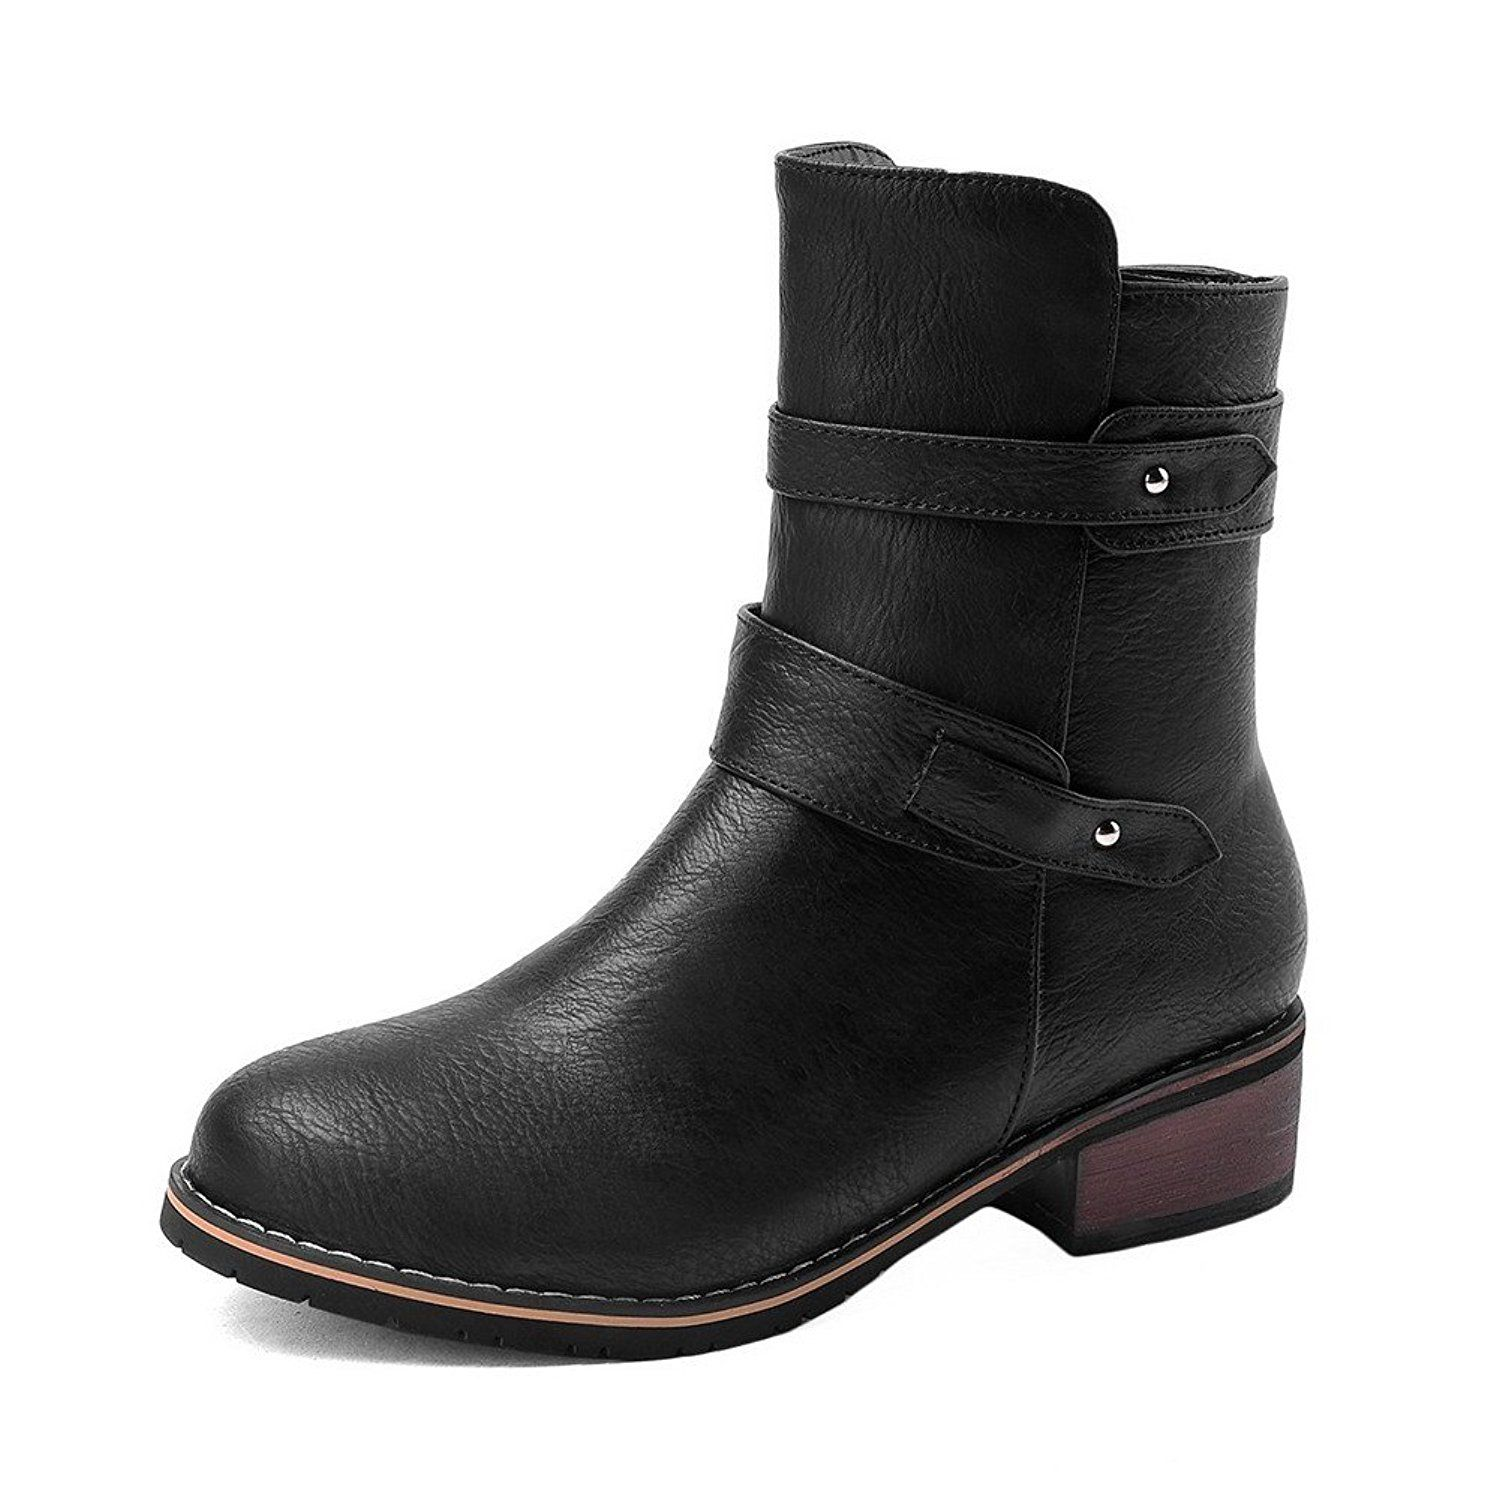 Shoes For Women Low Heel Round Toe Closed Toe Boots